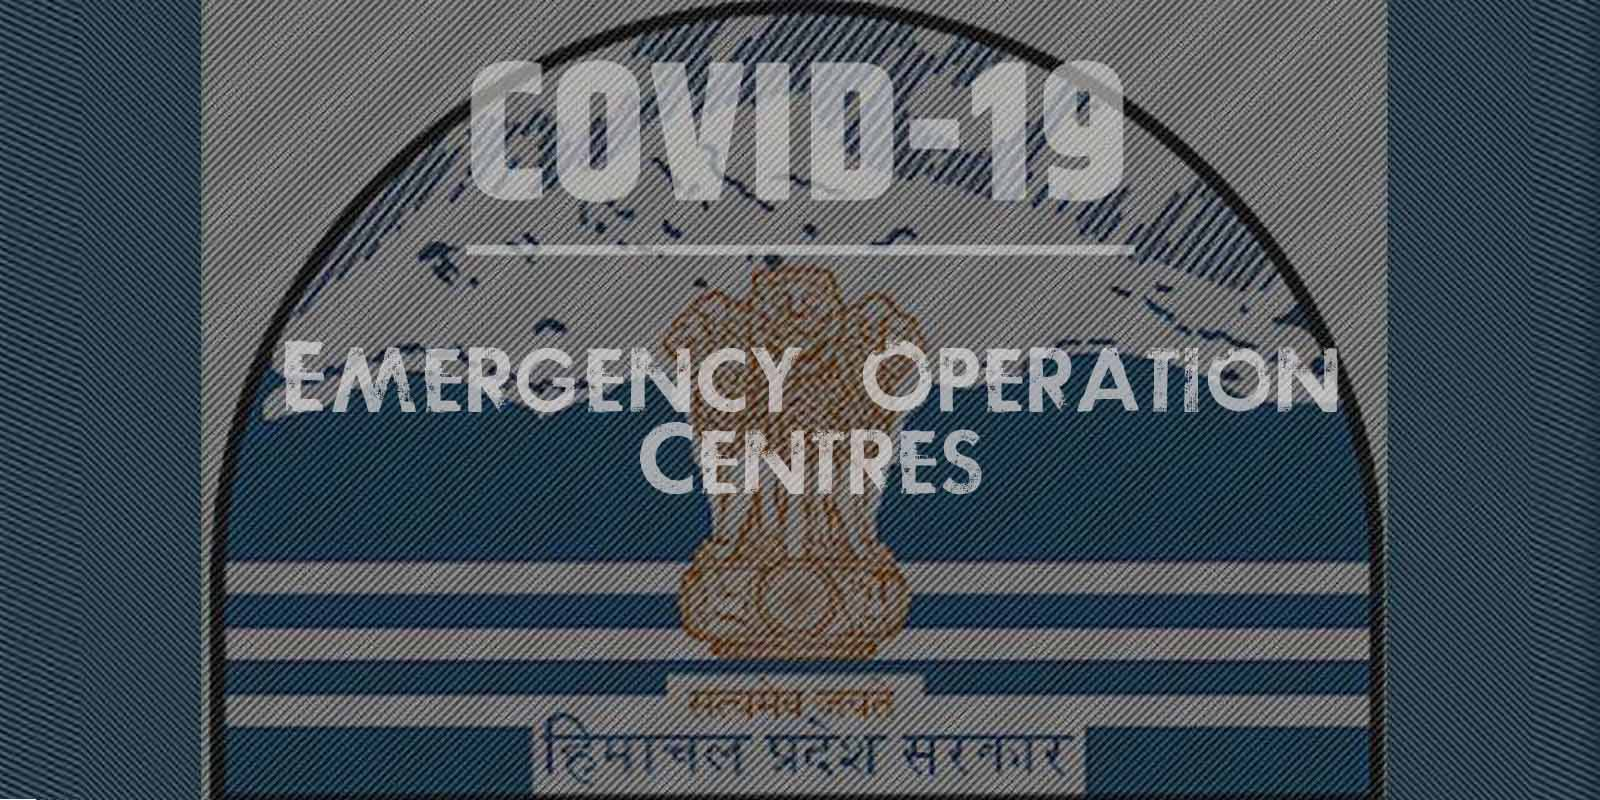 All HP COVID-19 Emergency Operation Centres